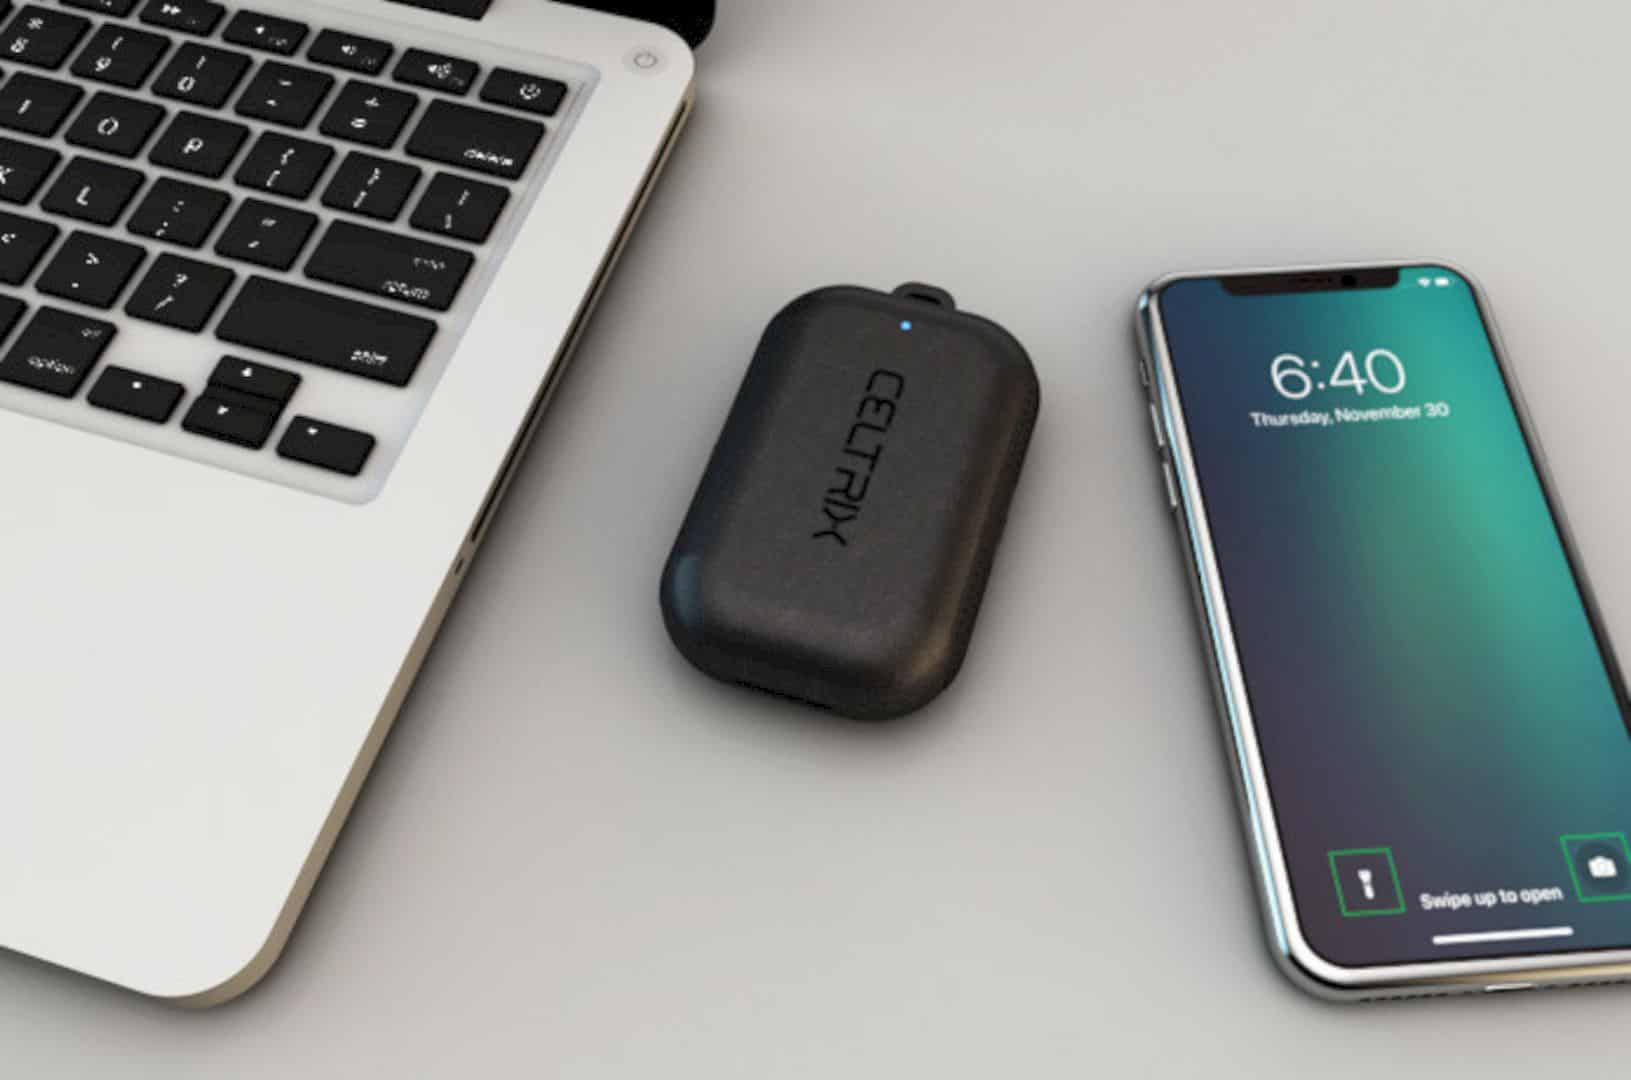 Celtrix: the world's smallest & powerful multifunctional device